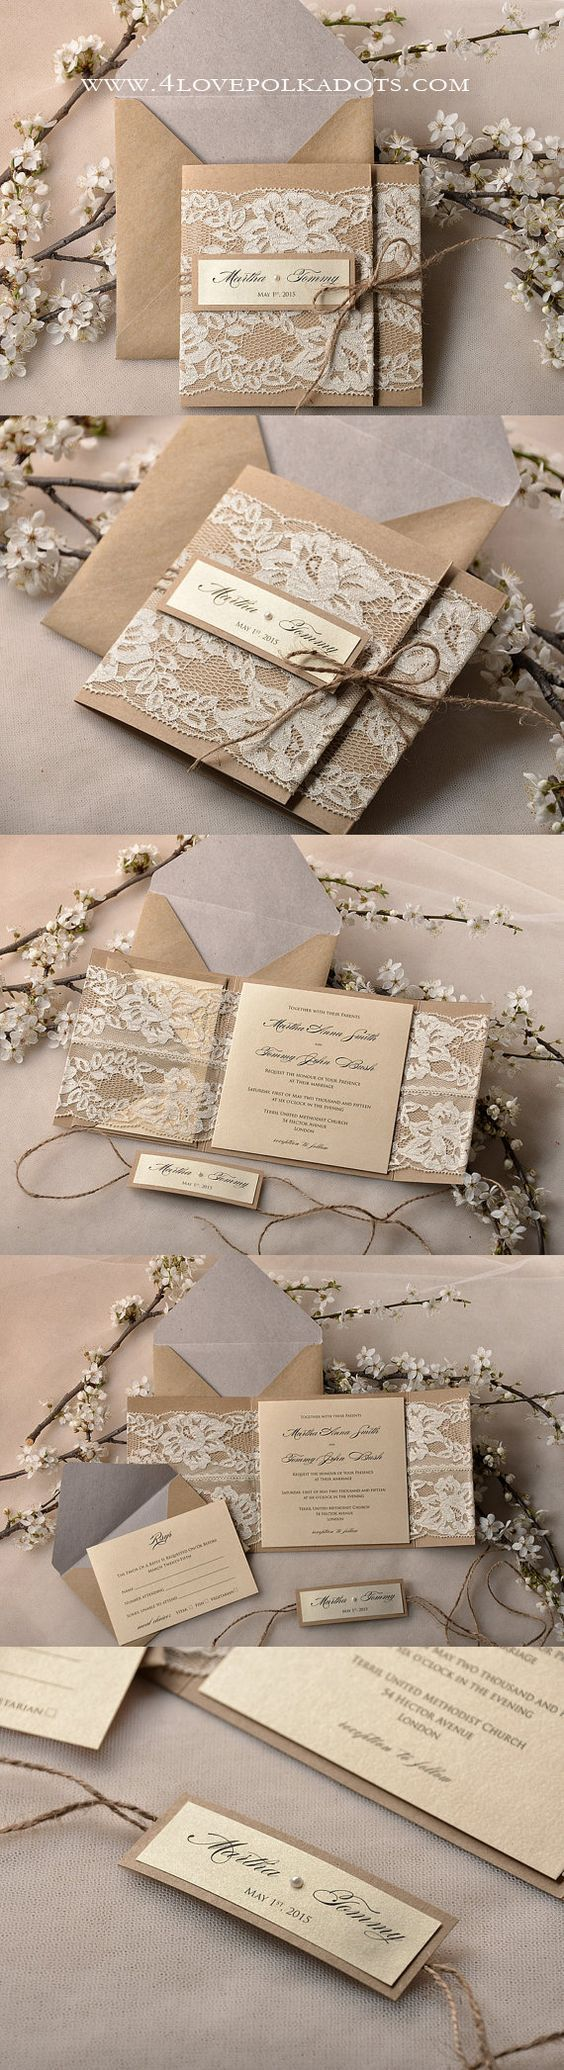 vintage wedding invitation text%0A Rustic Vintage Wedding Invitations